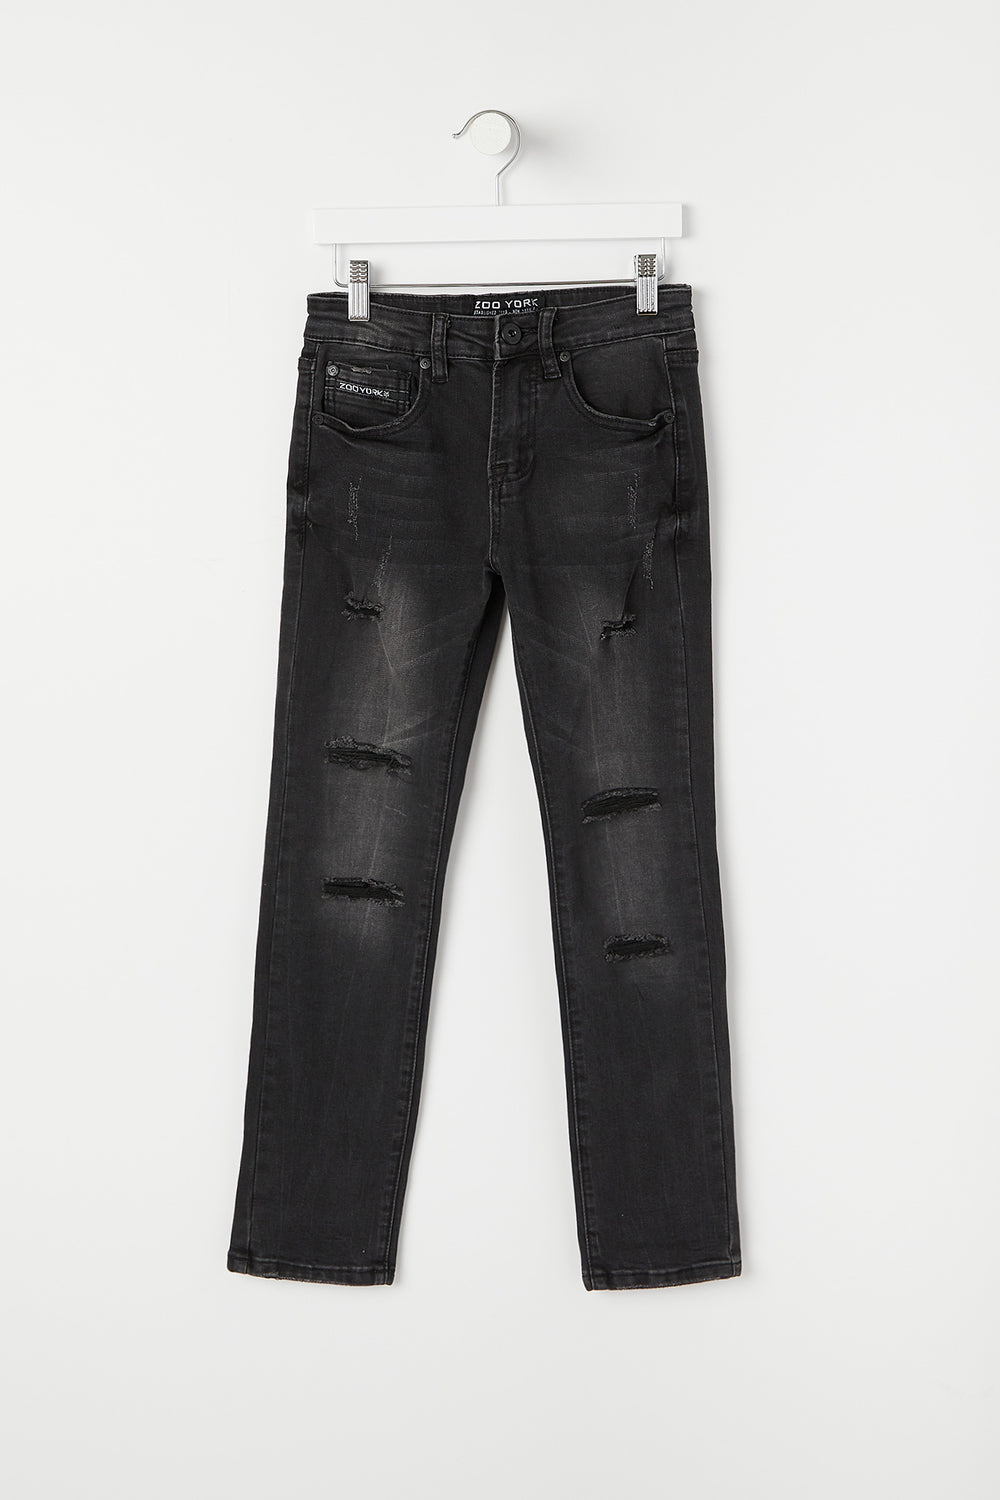 Zoo York Youth Distressed Skinny Jeans Solid Black